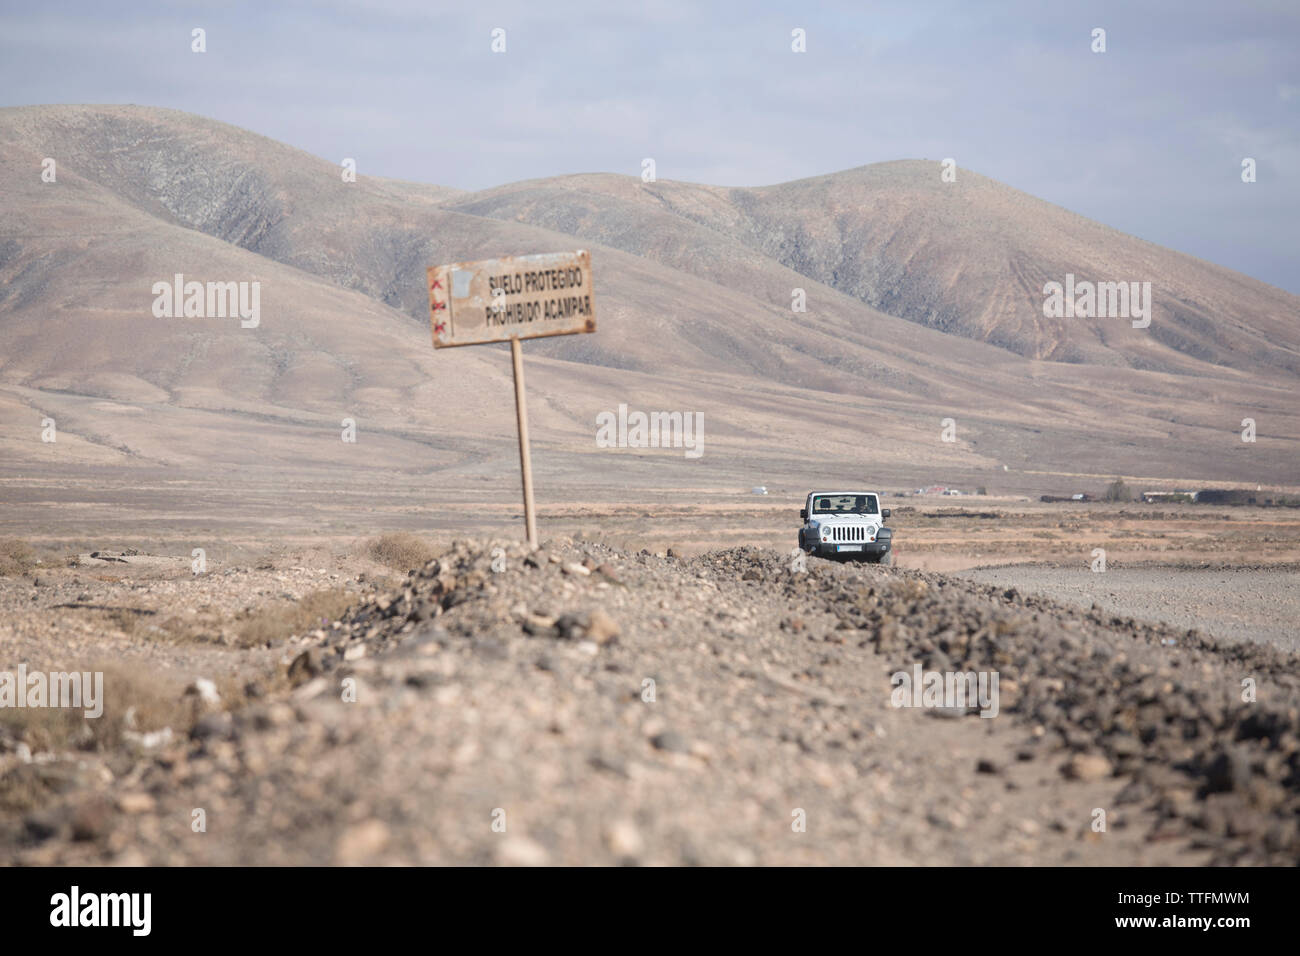 White jeep 4x4 driving off road  empty dirty road in desert landscape - Stock Image